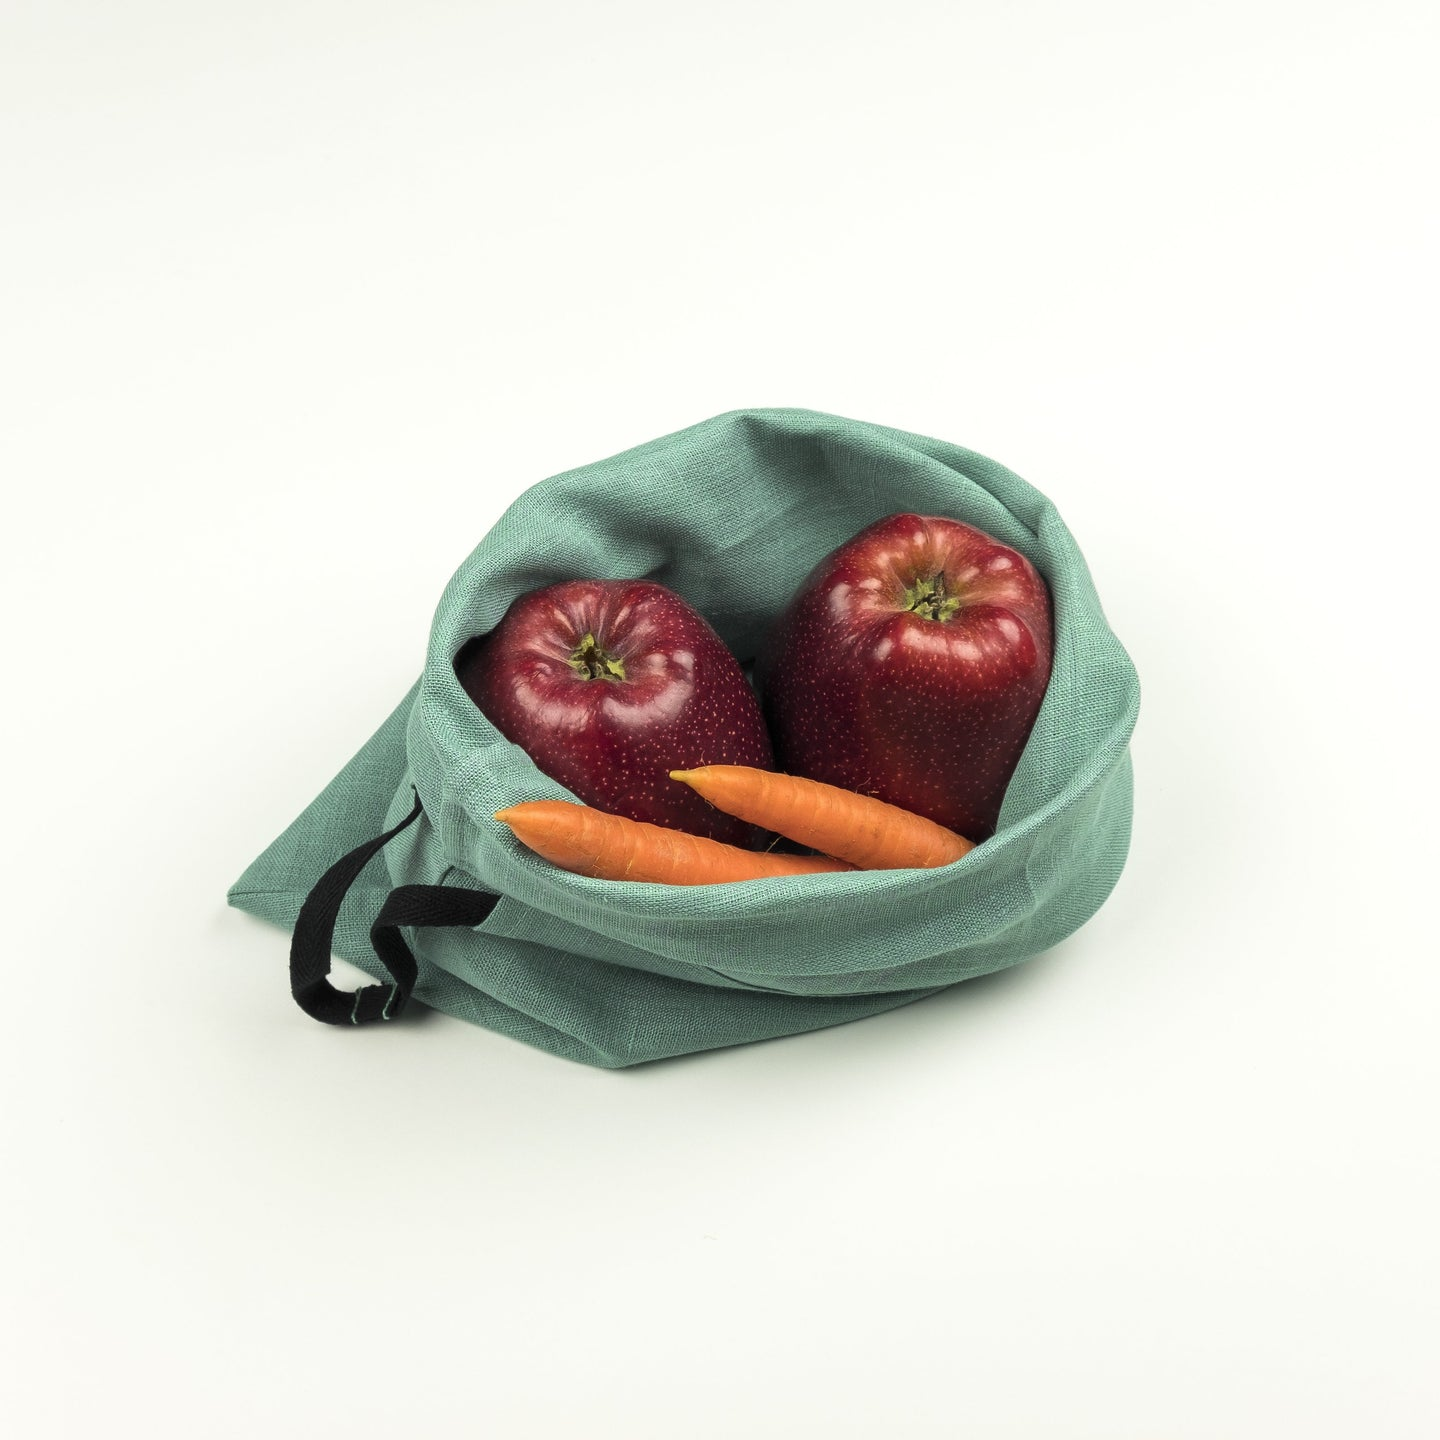 Fabric Produce Bag MEDIUM